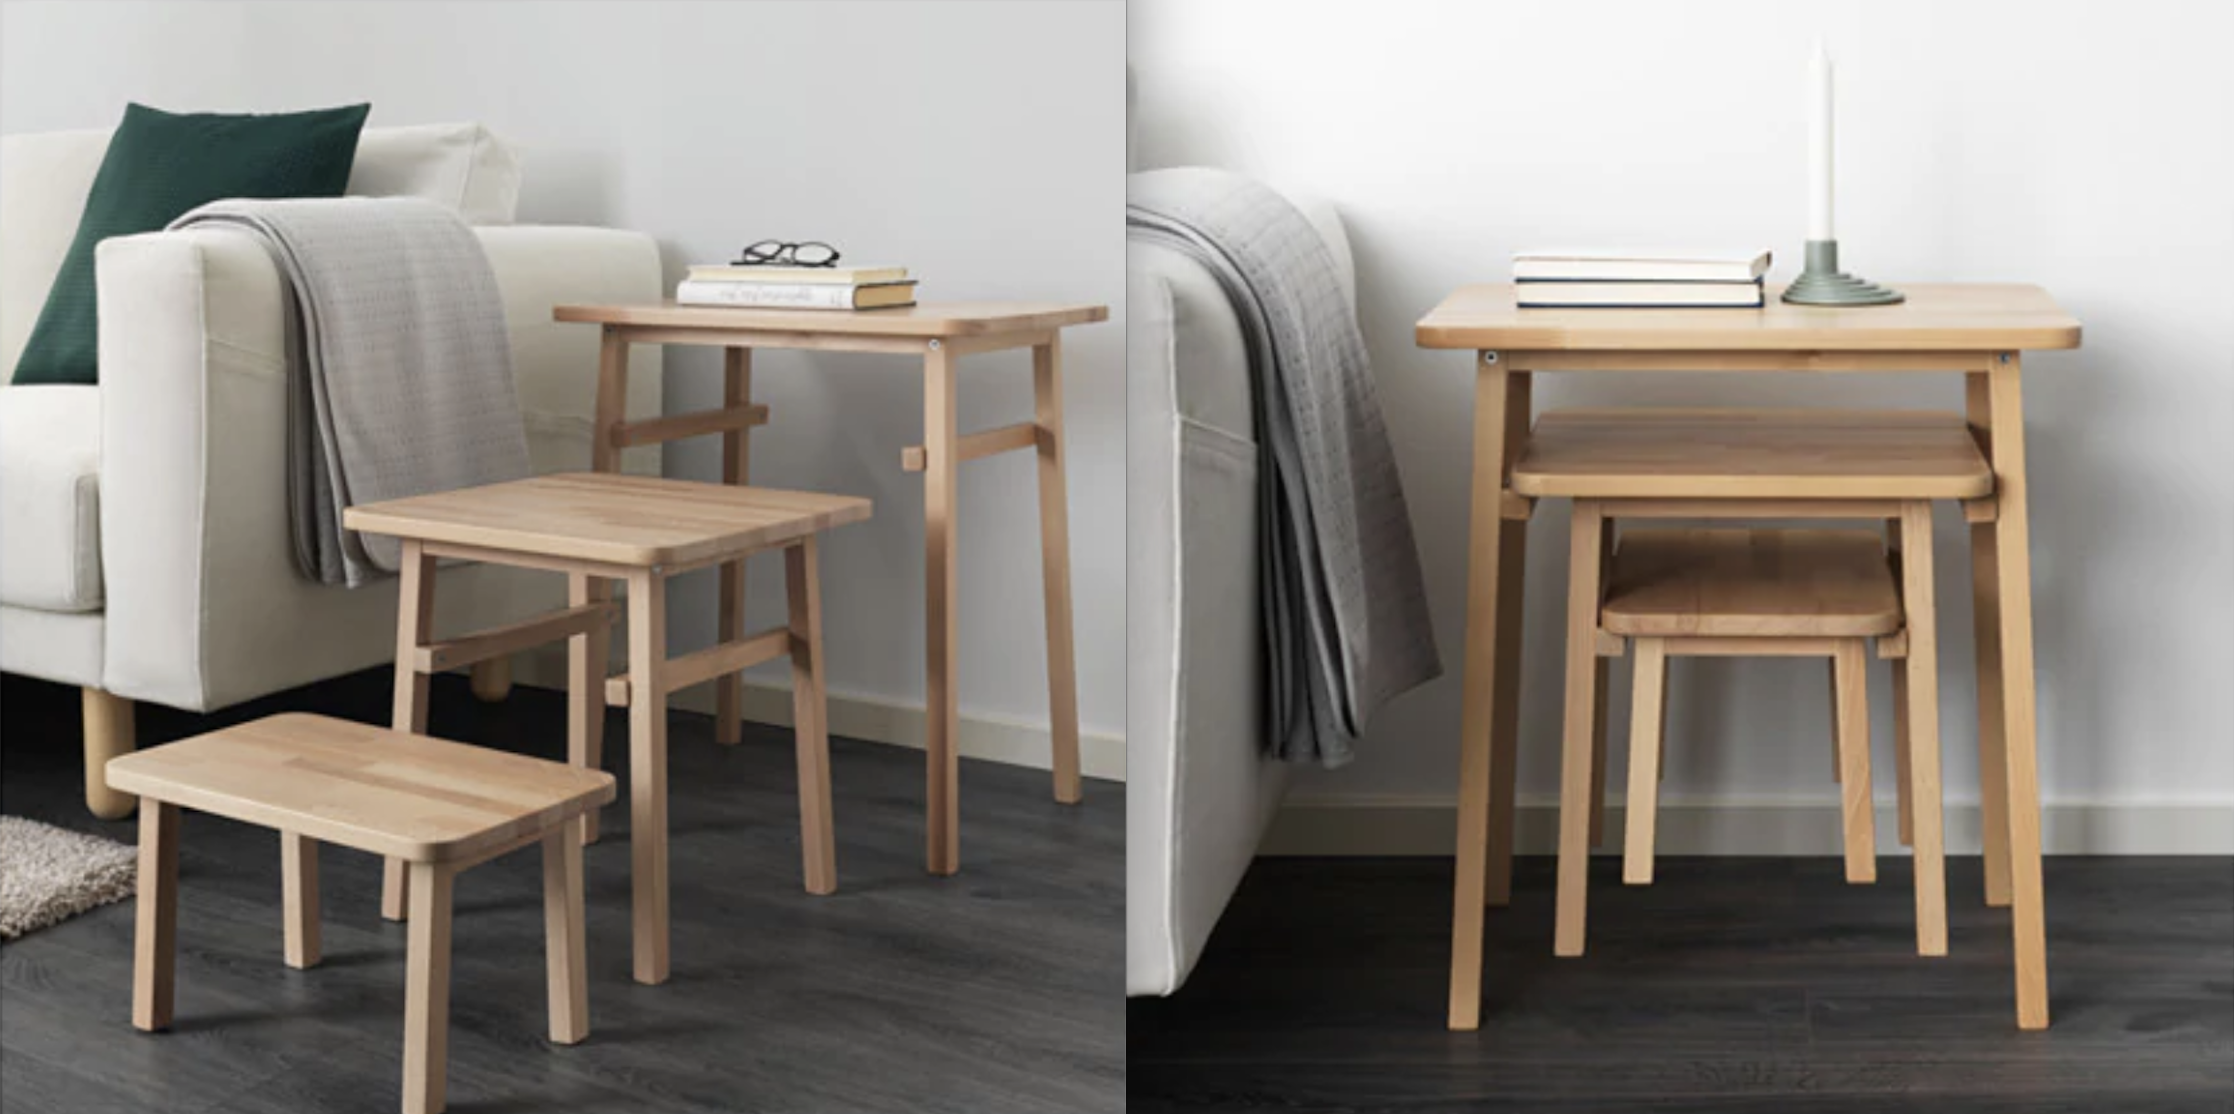 YPPERLIG Nest of tables. IKEA. €60 ex. P&P. 2 day delivery.